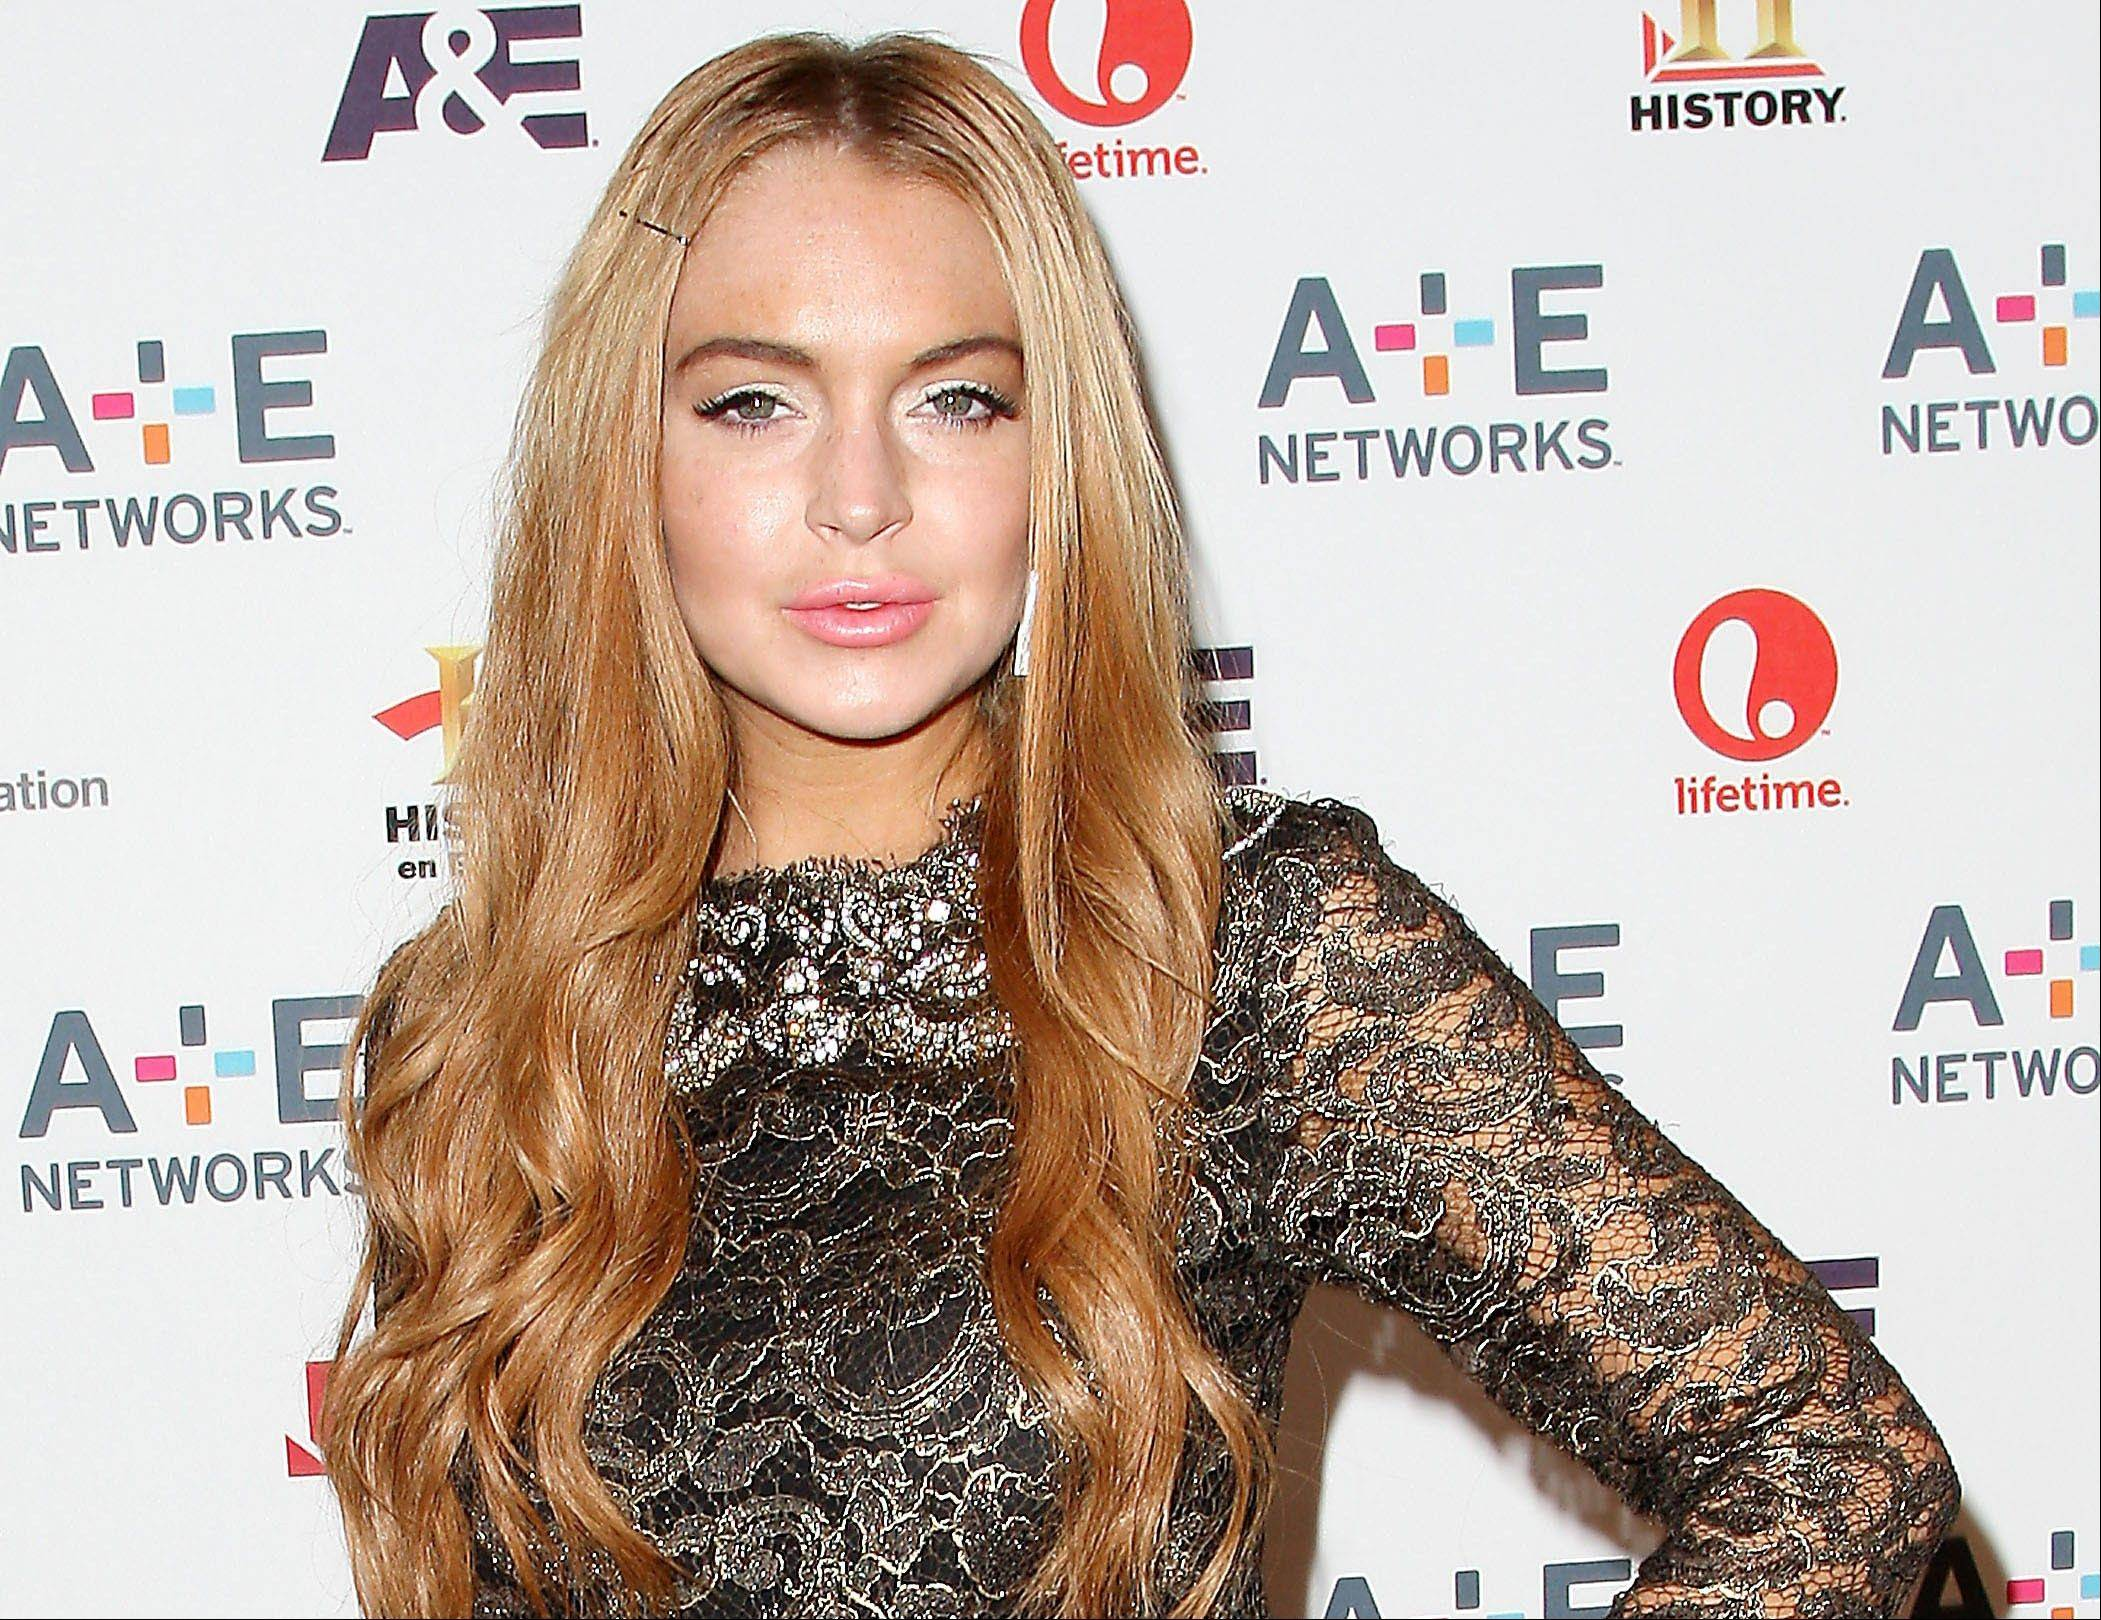 Prosecutors are not moving forward with charges against actress Lindsay Lohan after she was accused of clipping a man with her car outside a New York nightclub.